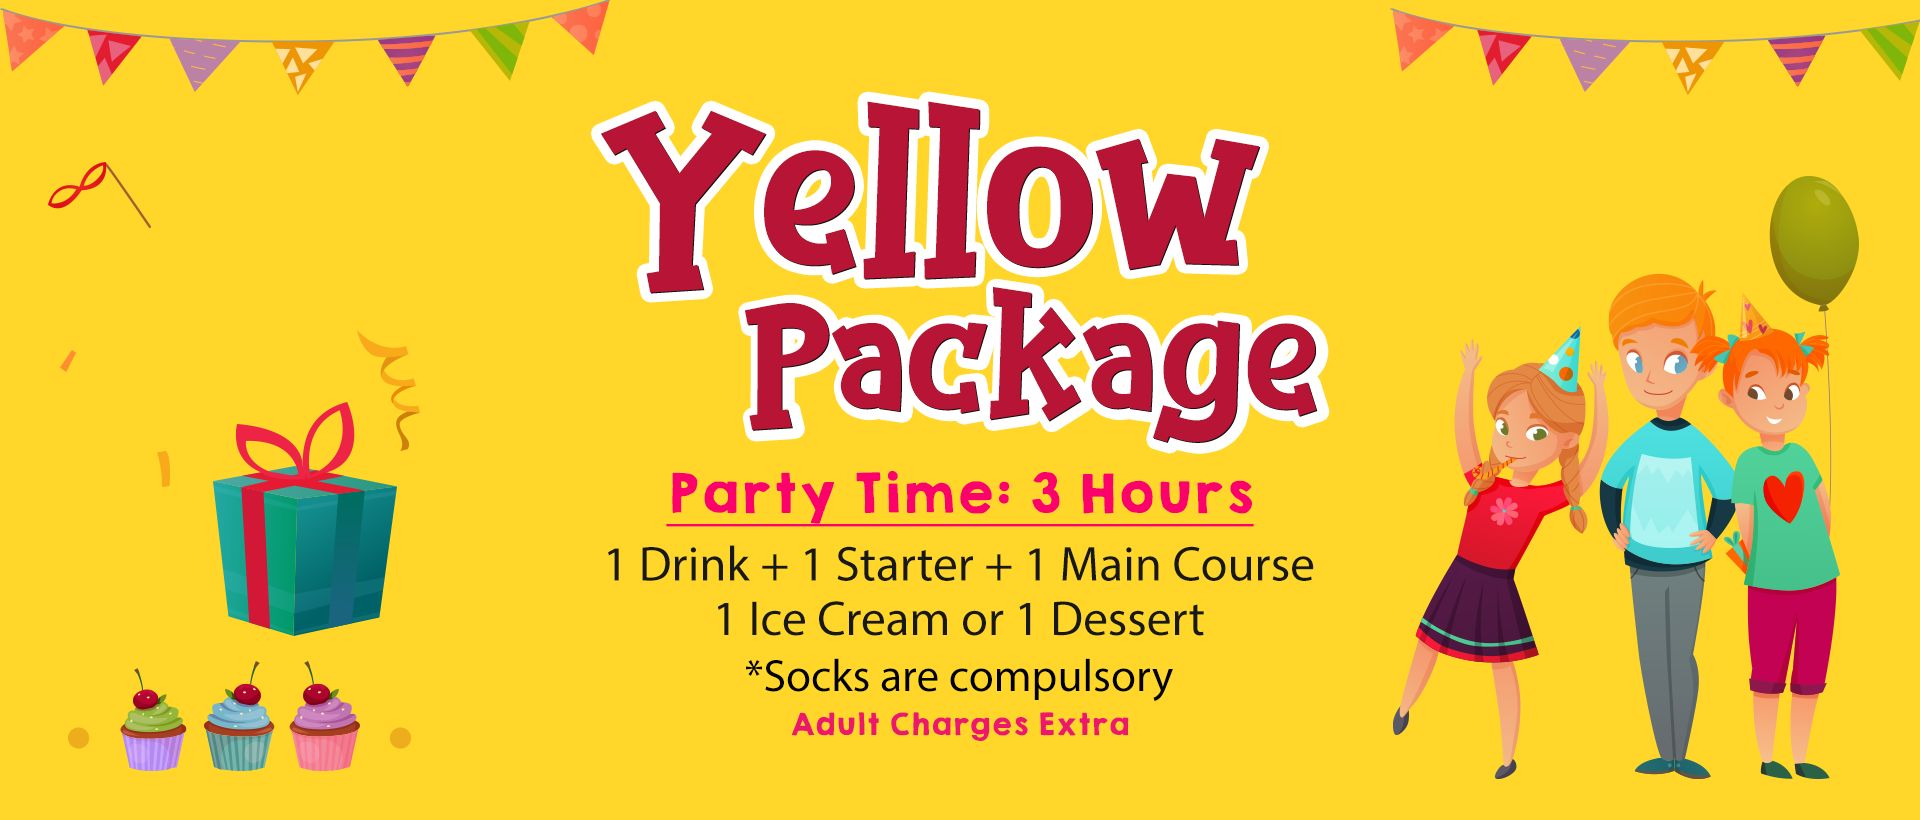 yellow package revised